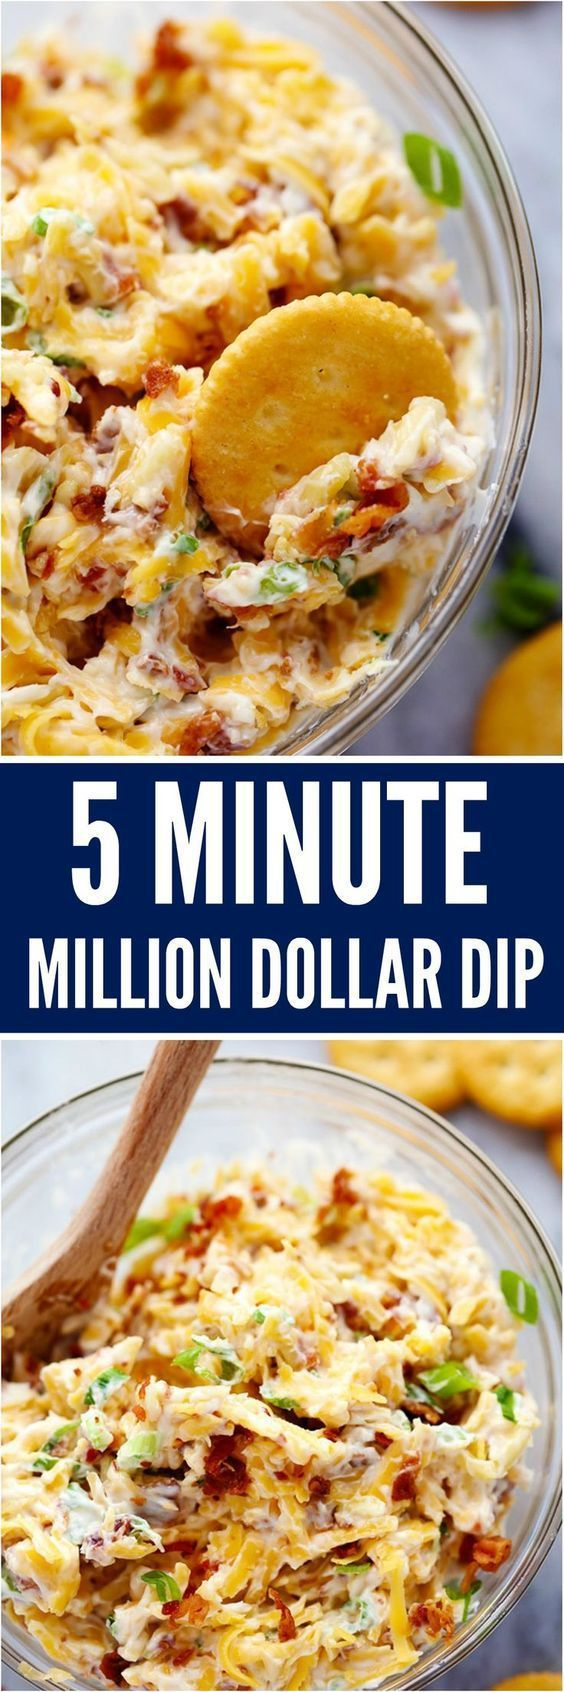 5 Million Dollar Dip is only 5 ingredients and they don't call it million dollar dip for nothing! It is so deliciously addicting and will be the biggest hit wherever it goes! via The Recipe Critic